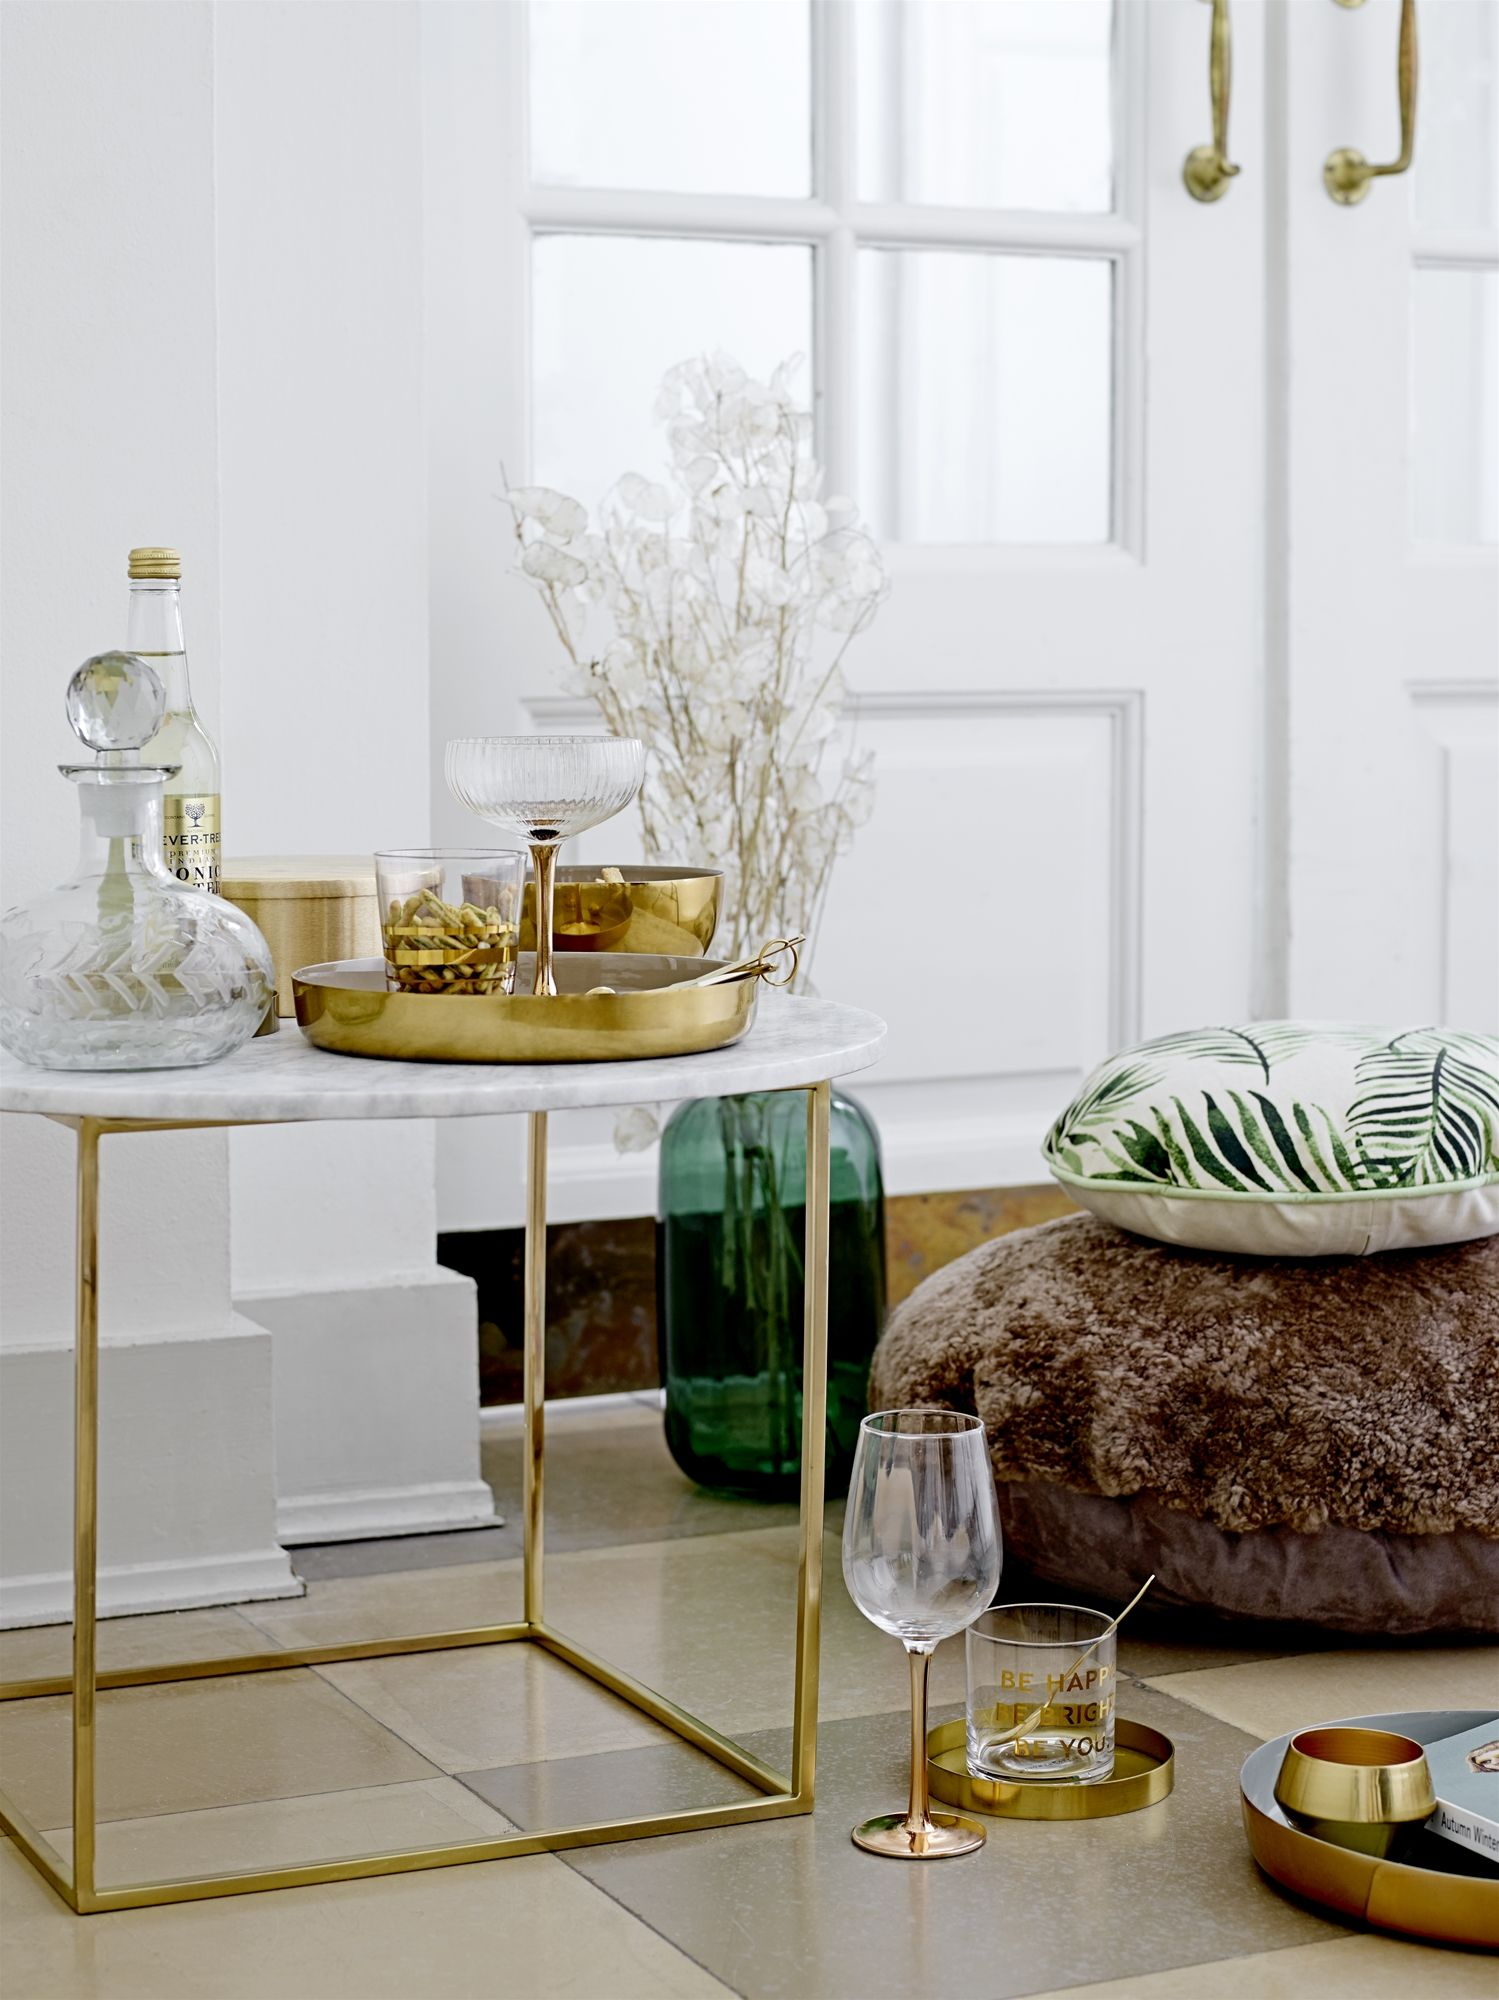 e9ea53e12d0312d24ccb917f196ad190 Top Result 50 Best Of Gold and Glass Coffee Table Image 2017 Ksh4